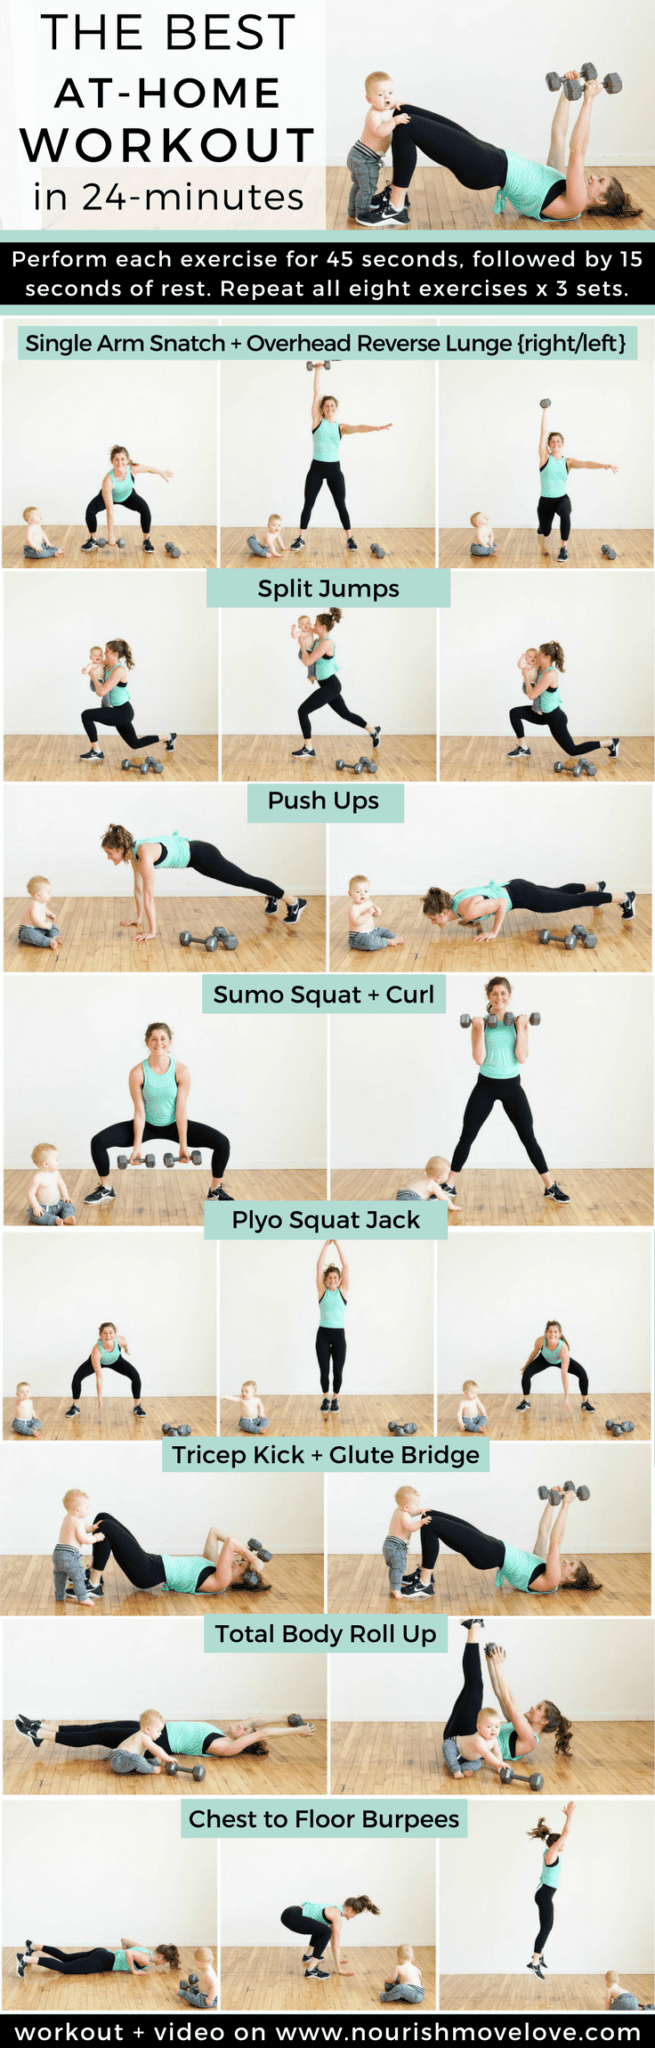 The Best At Home Strenght + HIIT Workout for Women | www.nourishmovelove.com